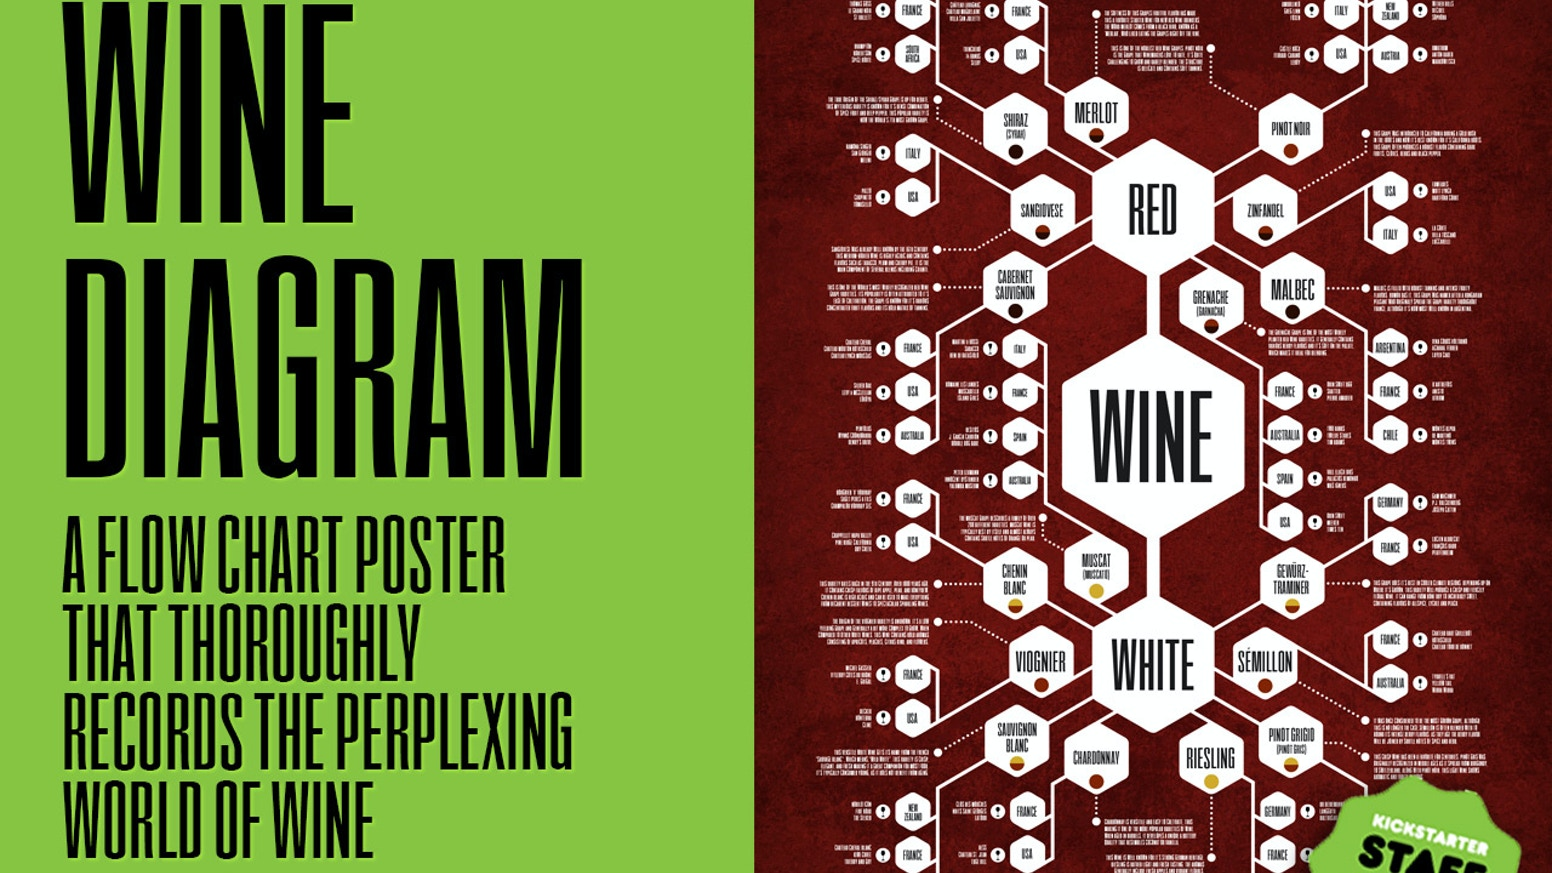 Flow chart poster that thoroughly records the perplexing world of wine. Part 3 of the Diagram Series.